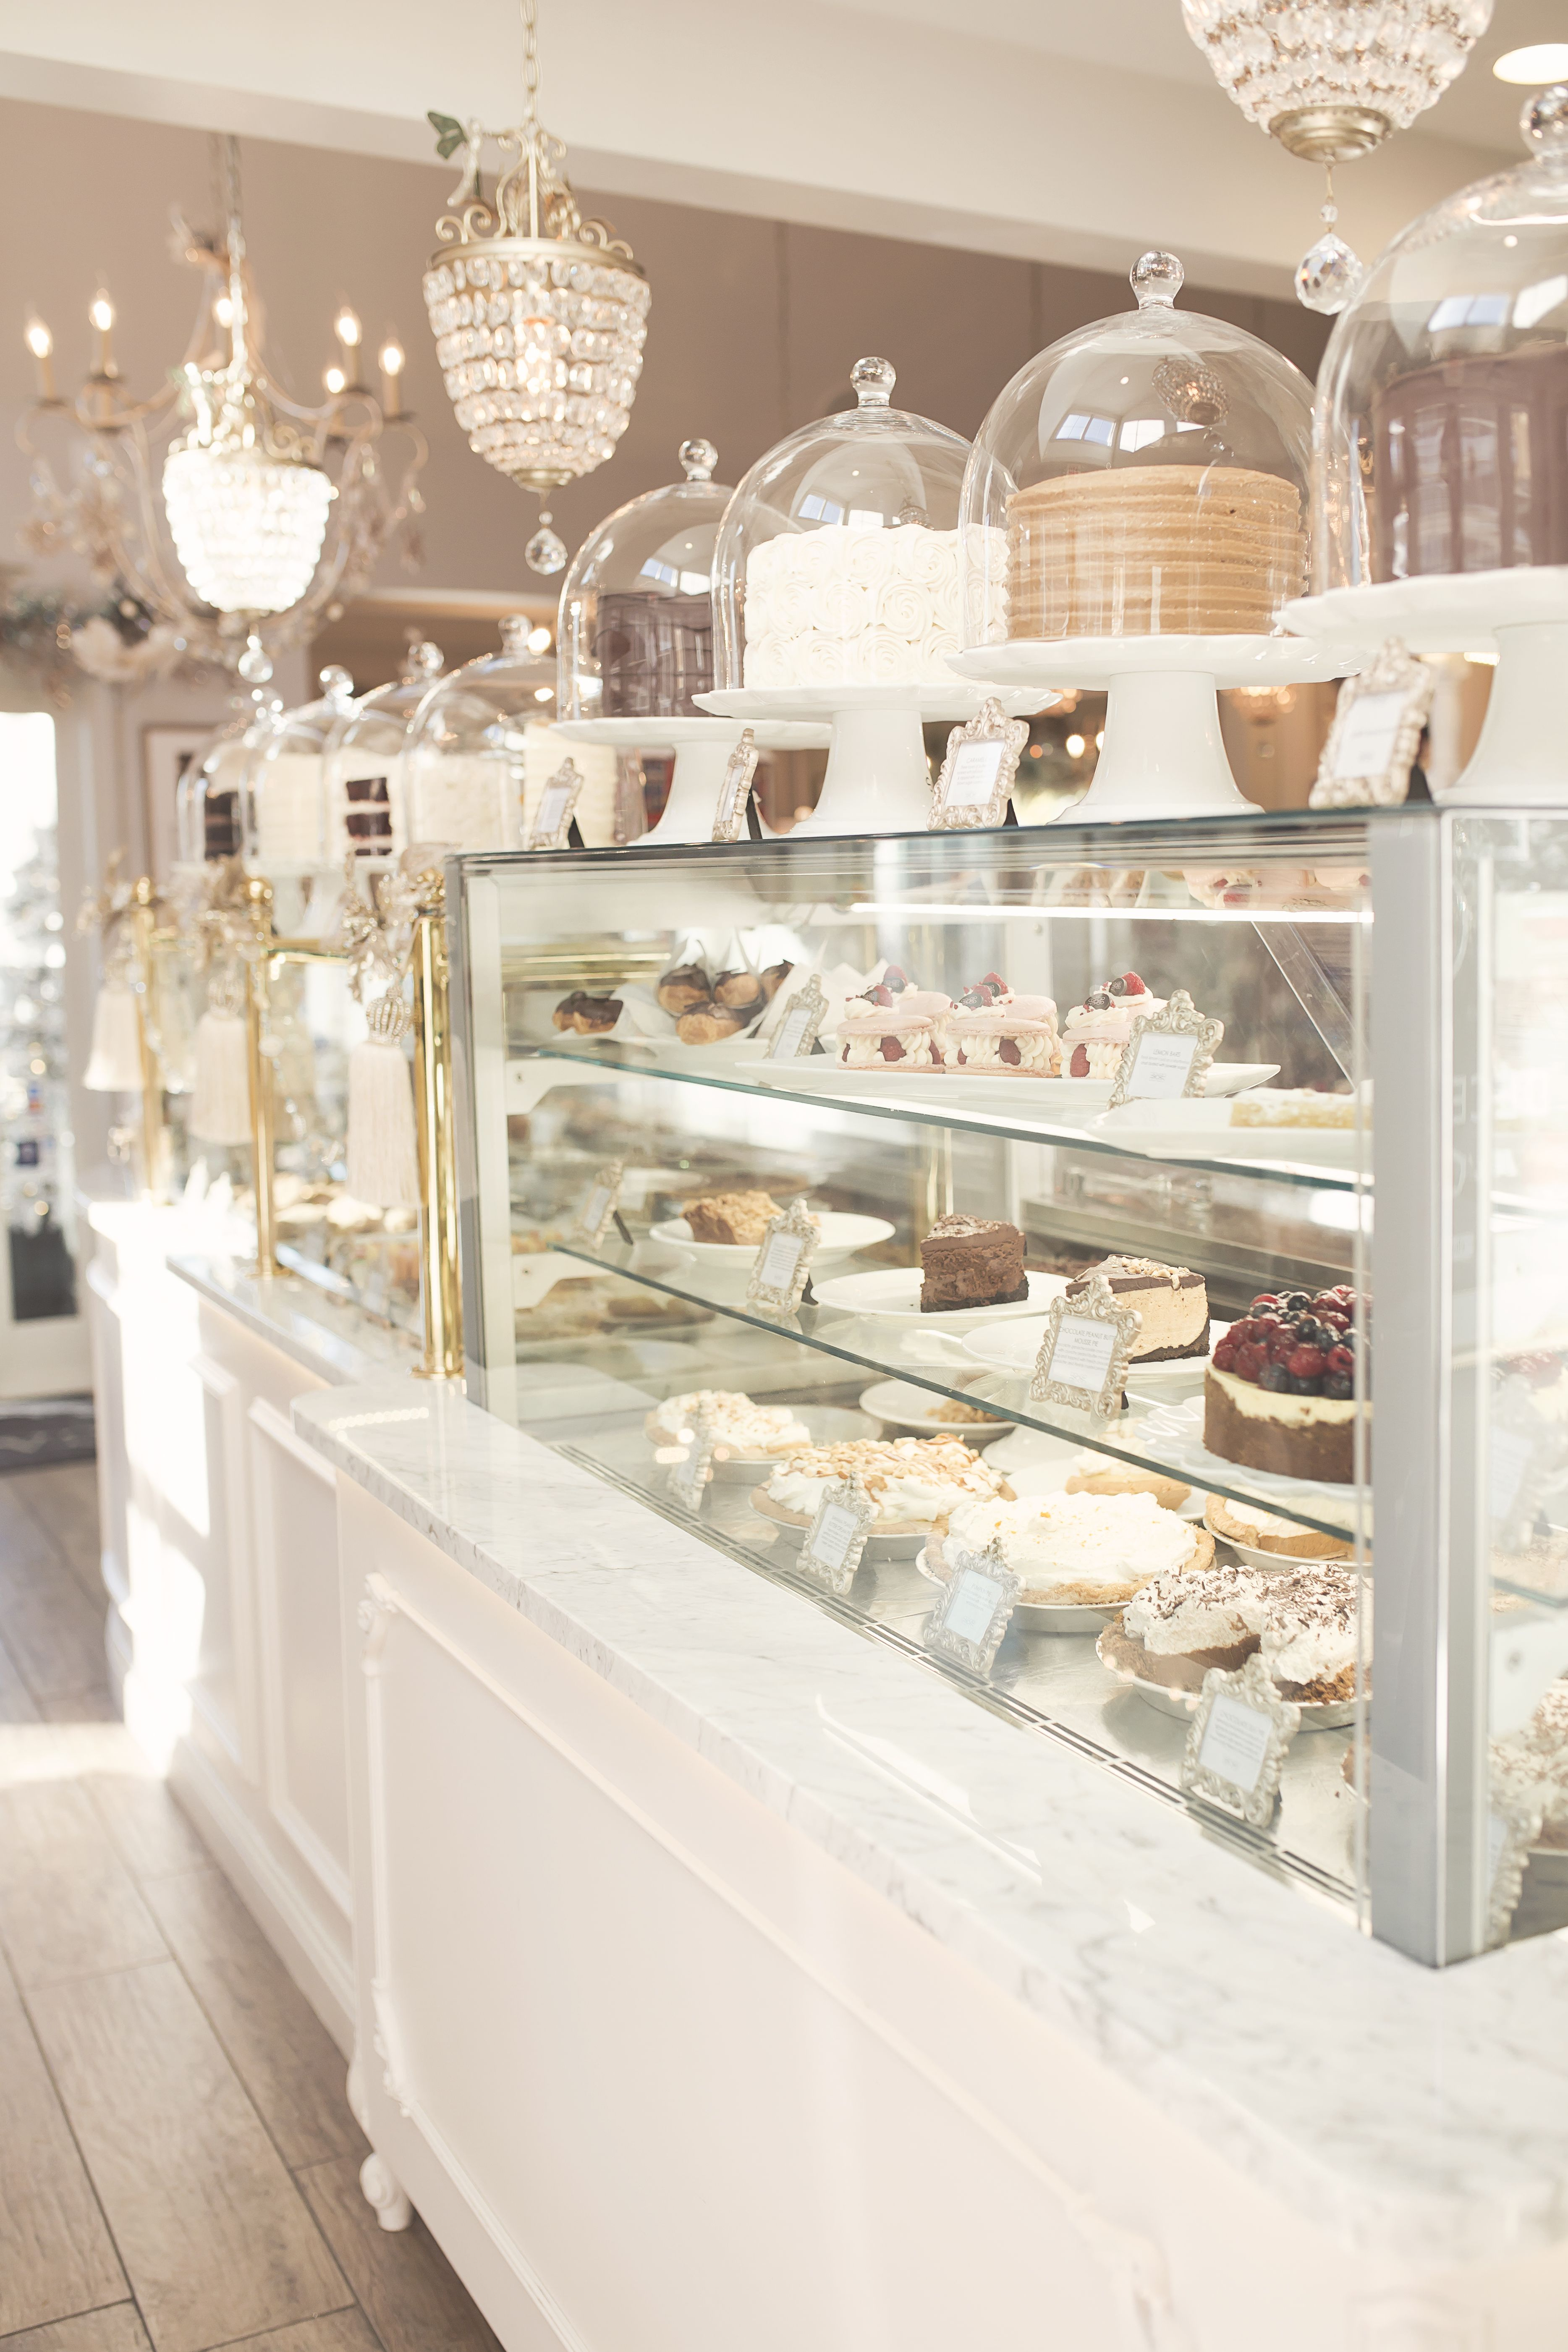 Cakes on display at the Cake Bake Shop in Indianapolis.   stores ...